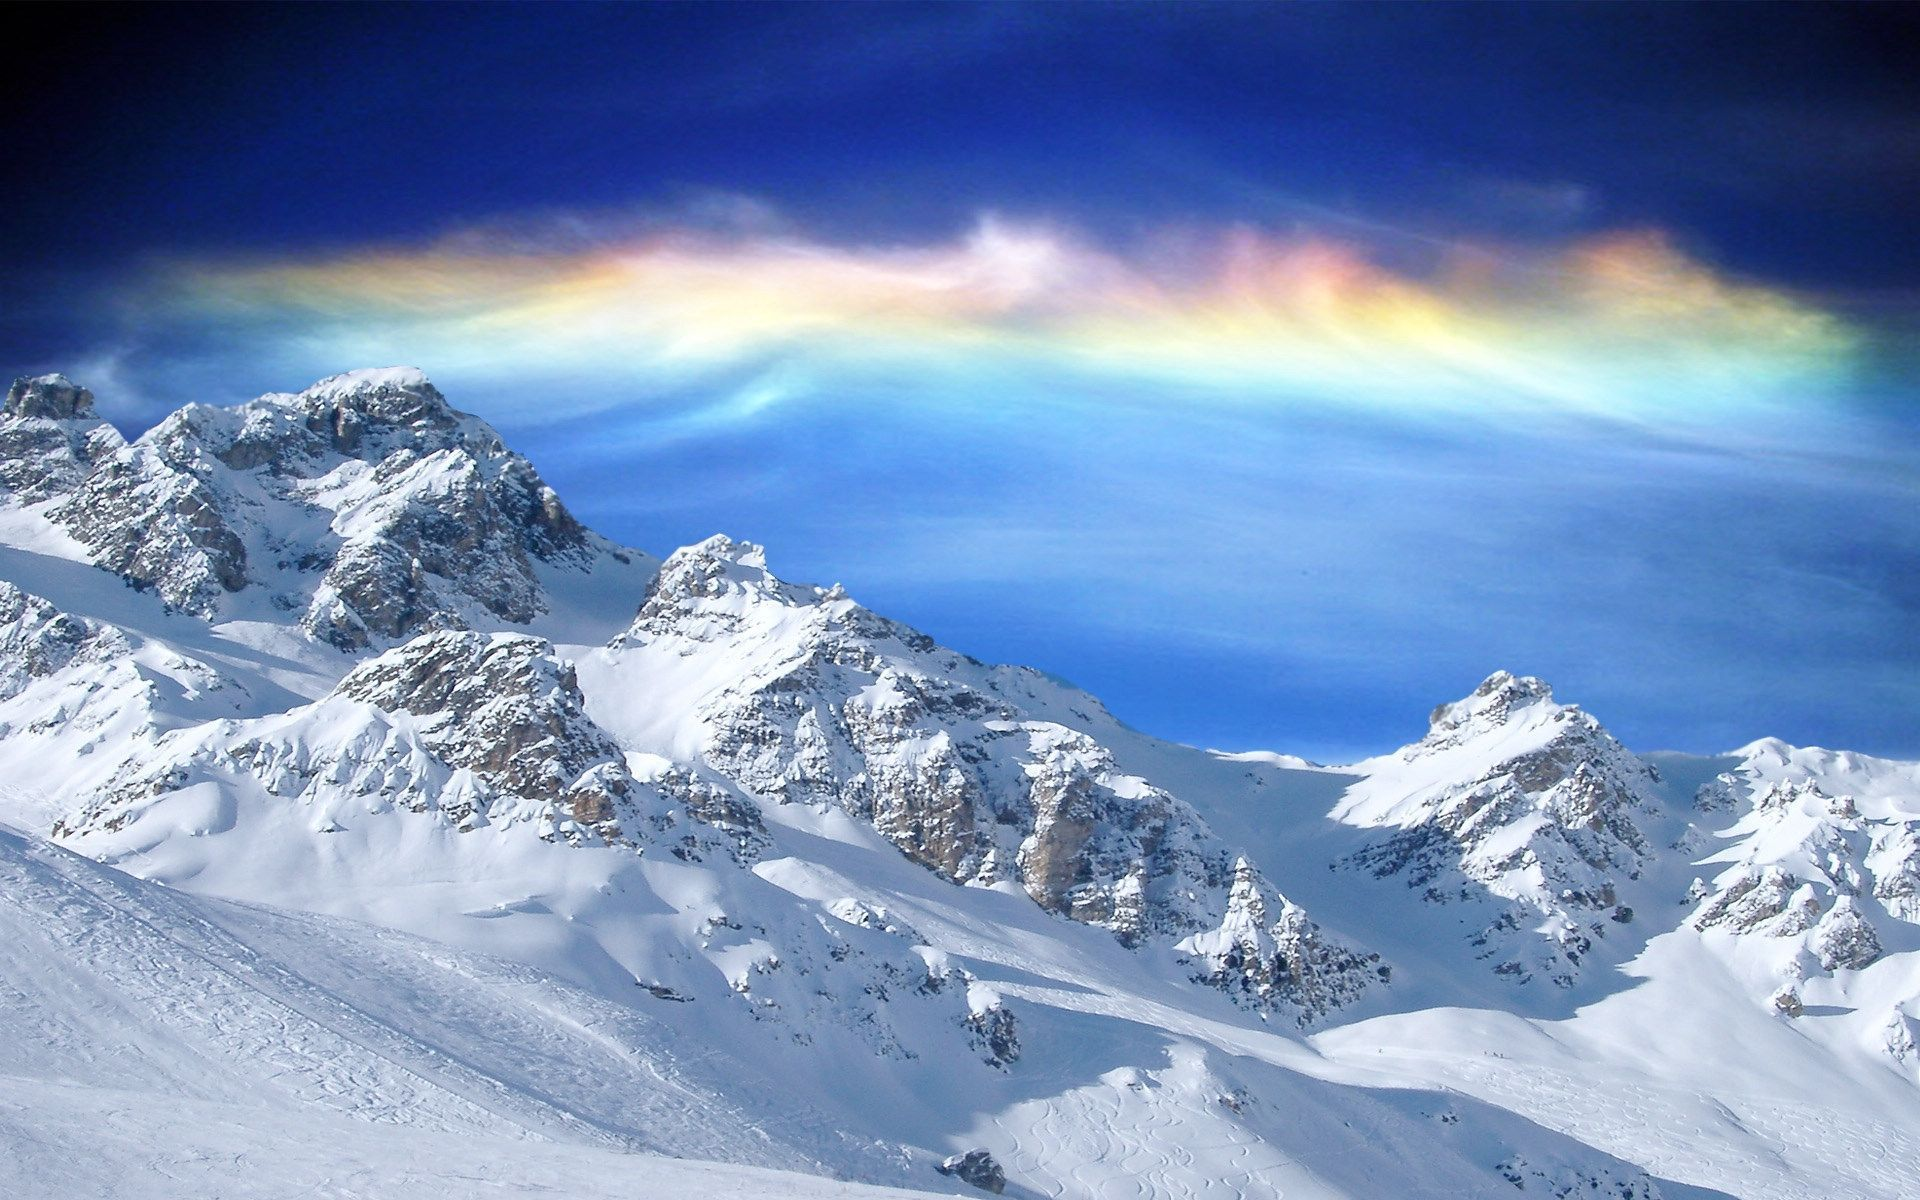 Winter Mountains Daily Backgrounds in HD 1920x1200